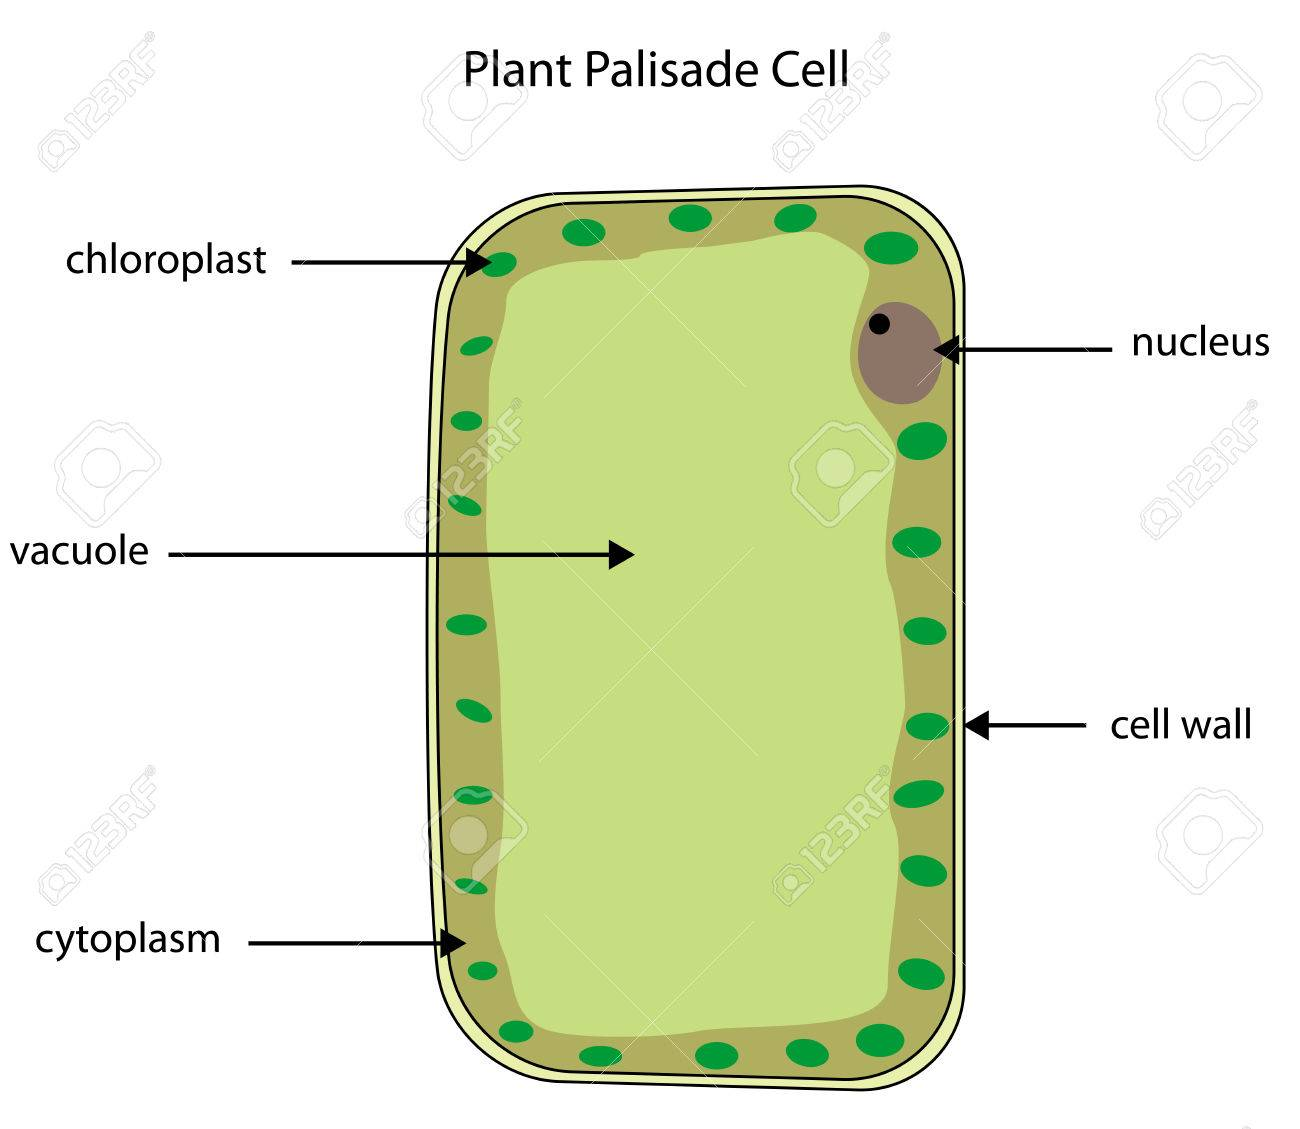 Cell photosynthesis diagram trusted wiring diagram labelled diagram of a plant palisade cell where photosynthesis rh 123rf com plant cell diagram simple plant cell diagram ccuart Choice Image